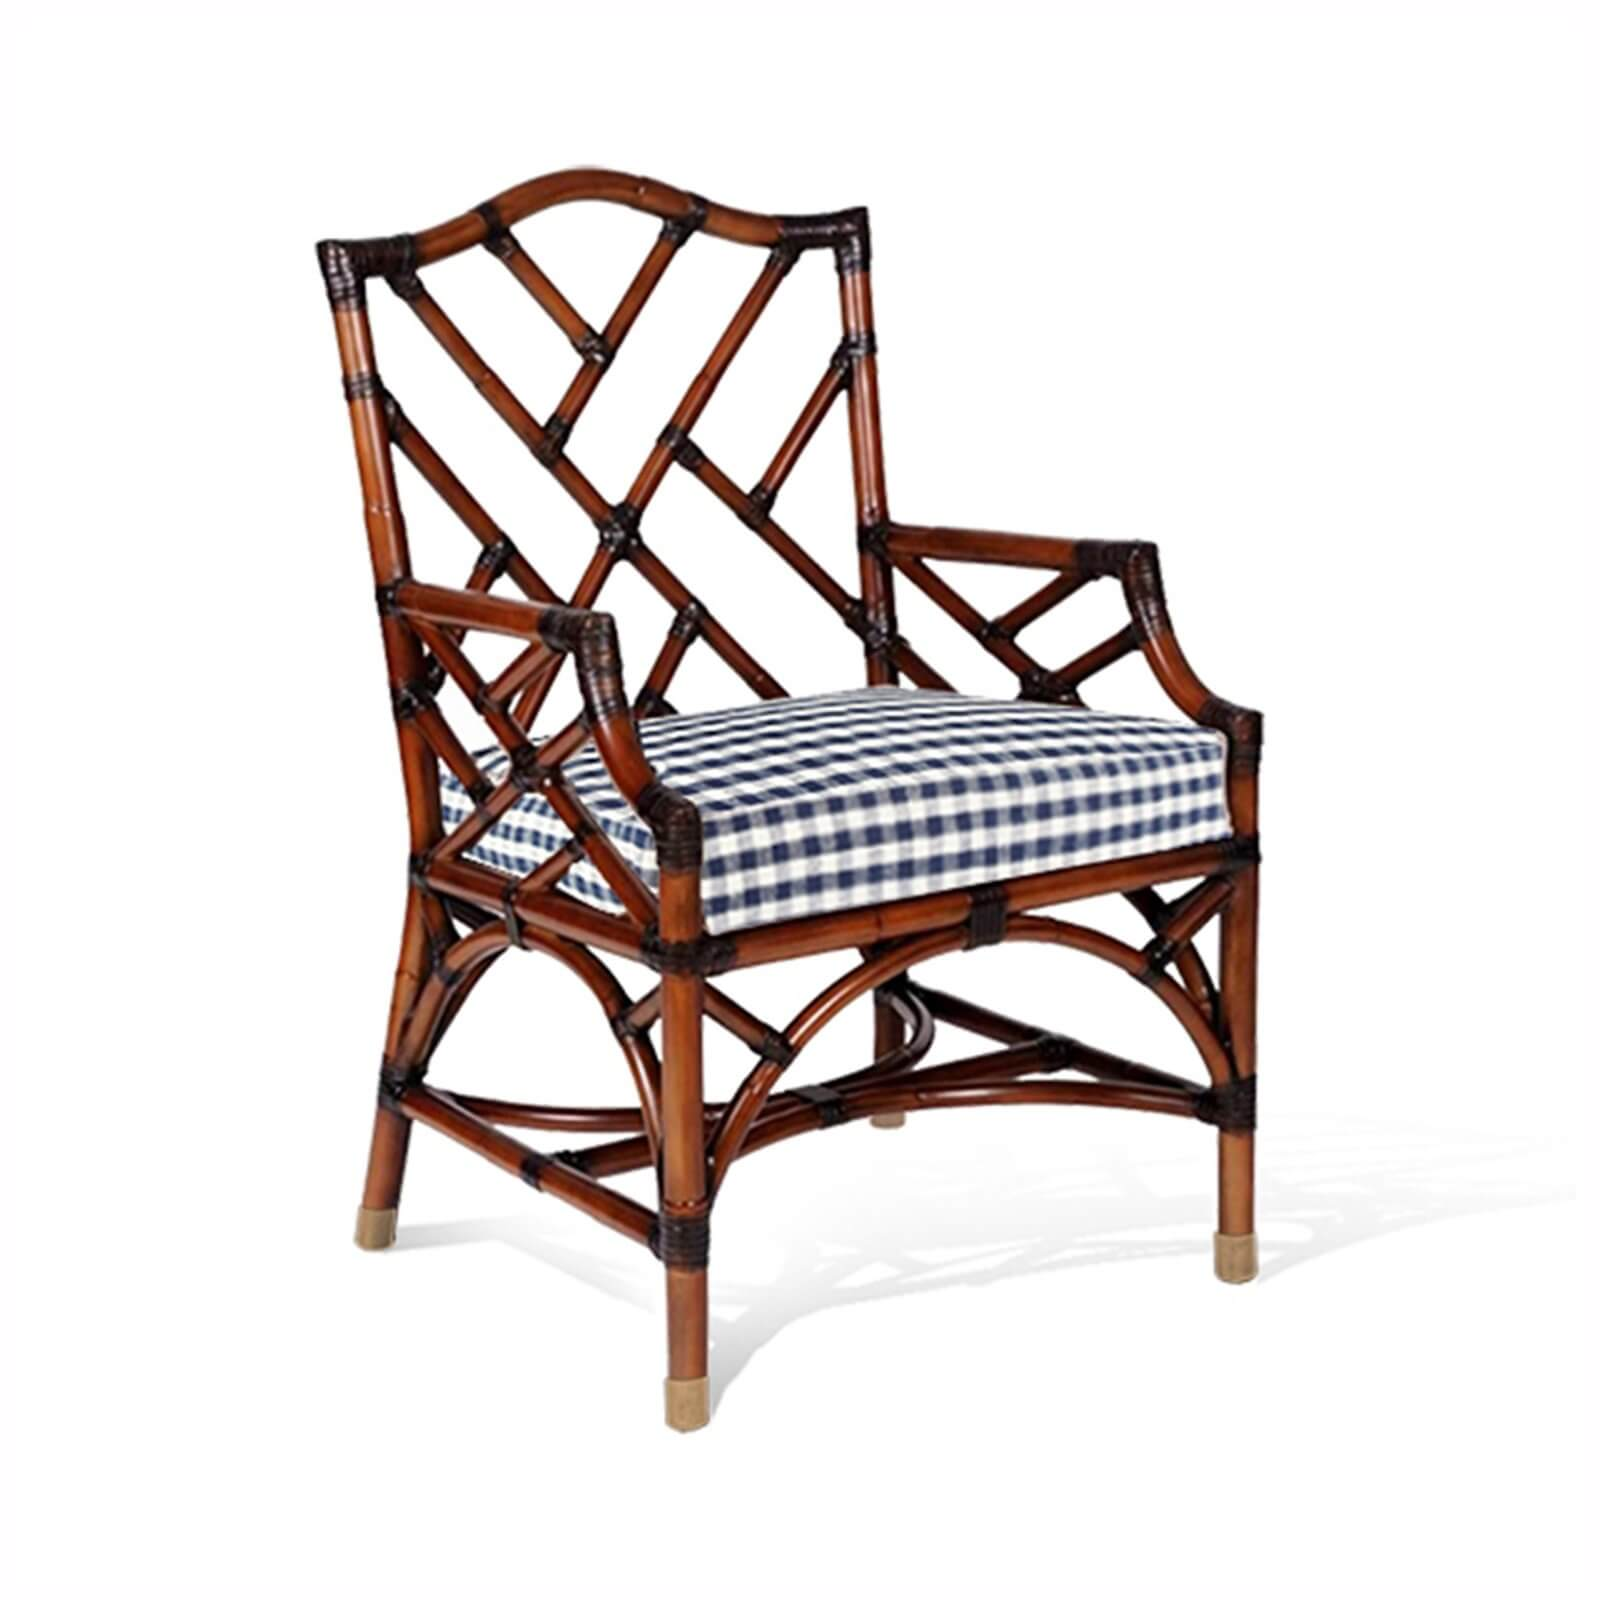 BRIGHTON ARM CHAIR - STUART MEMBERY HOME COLLECTION